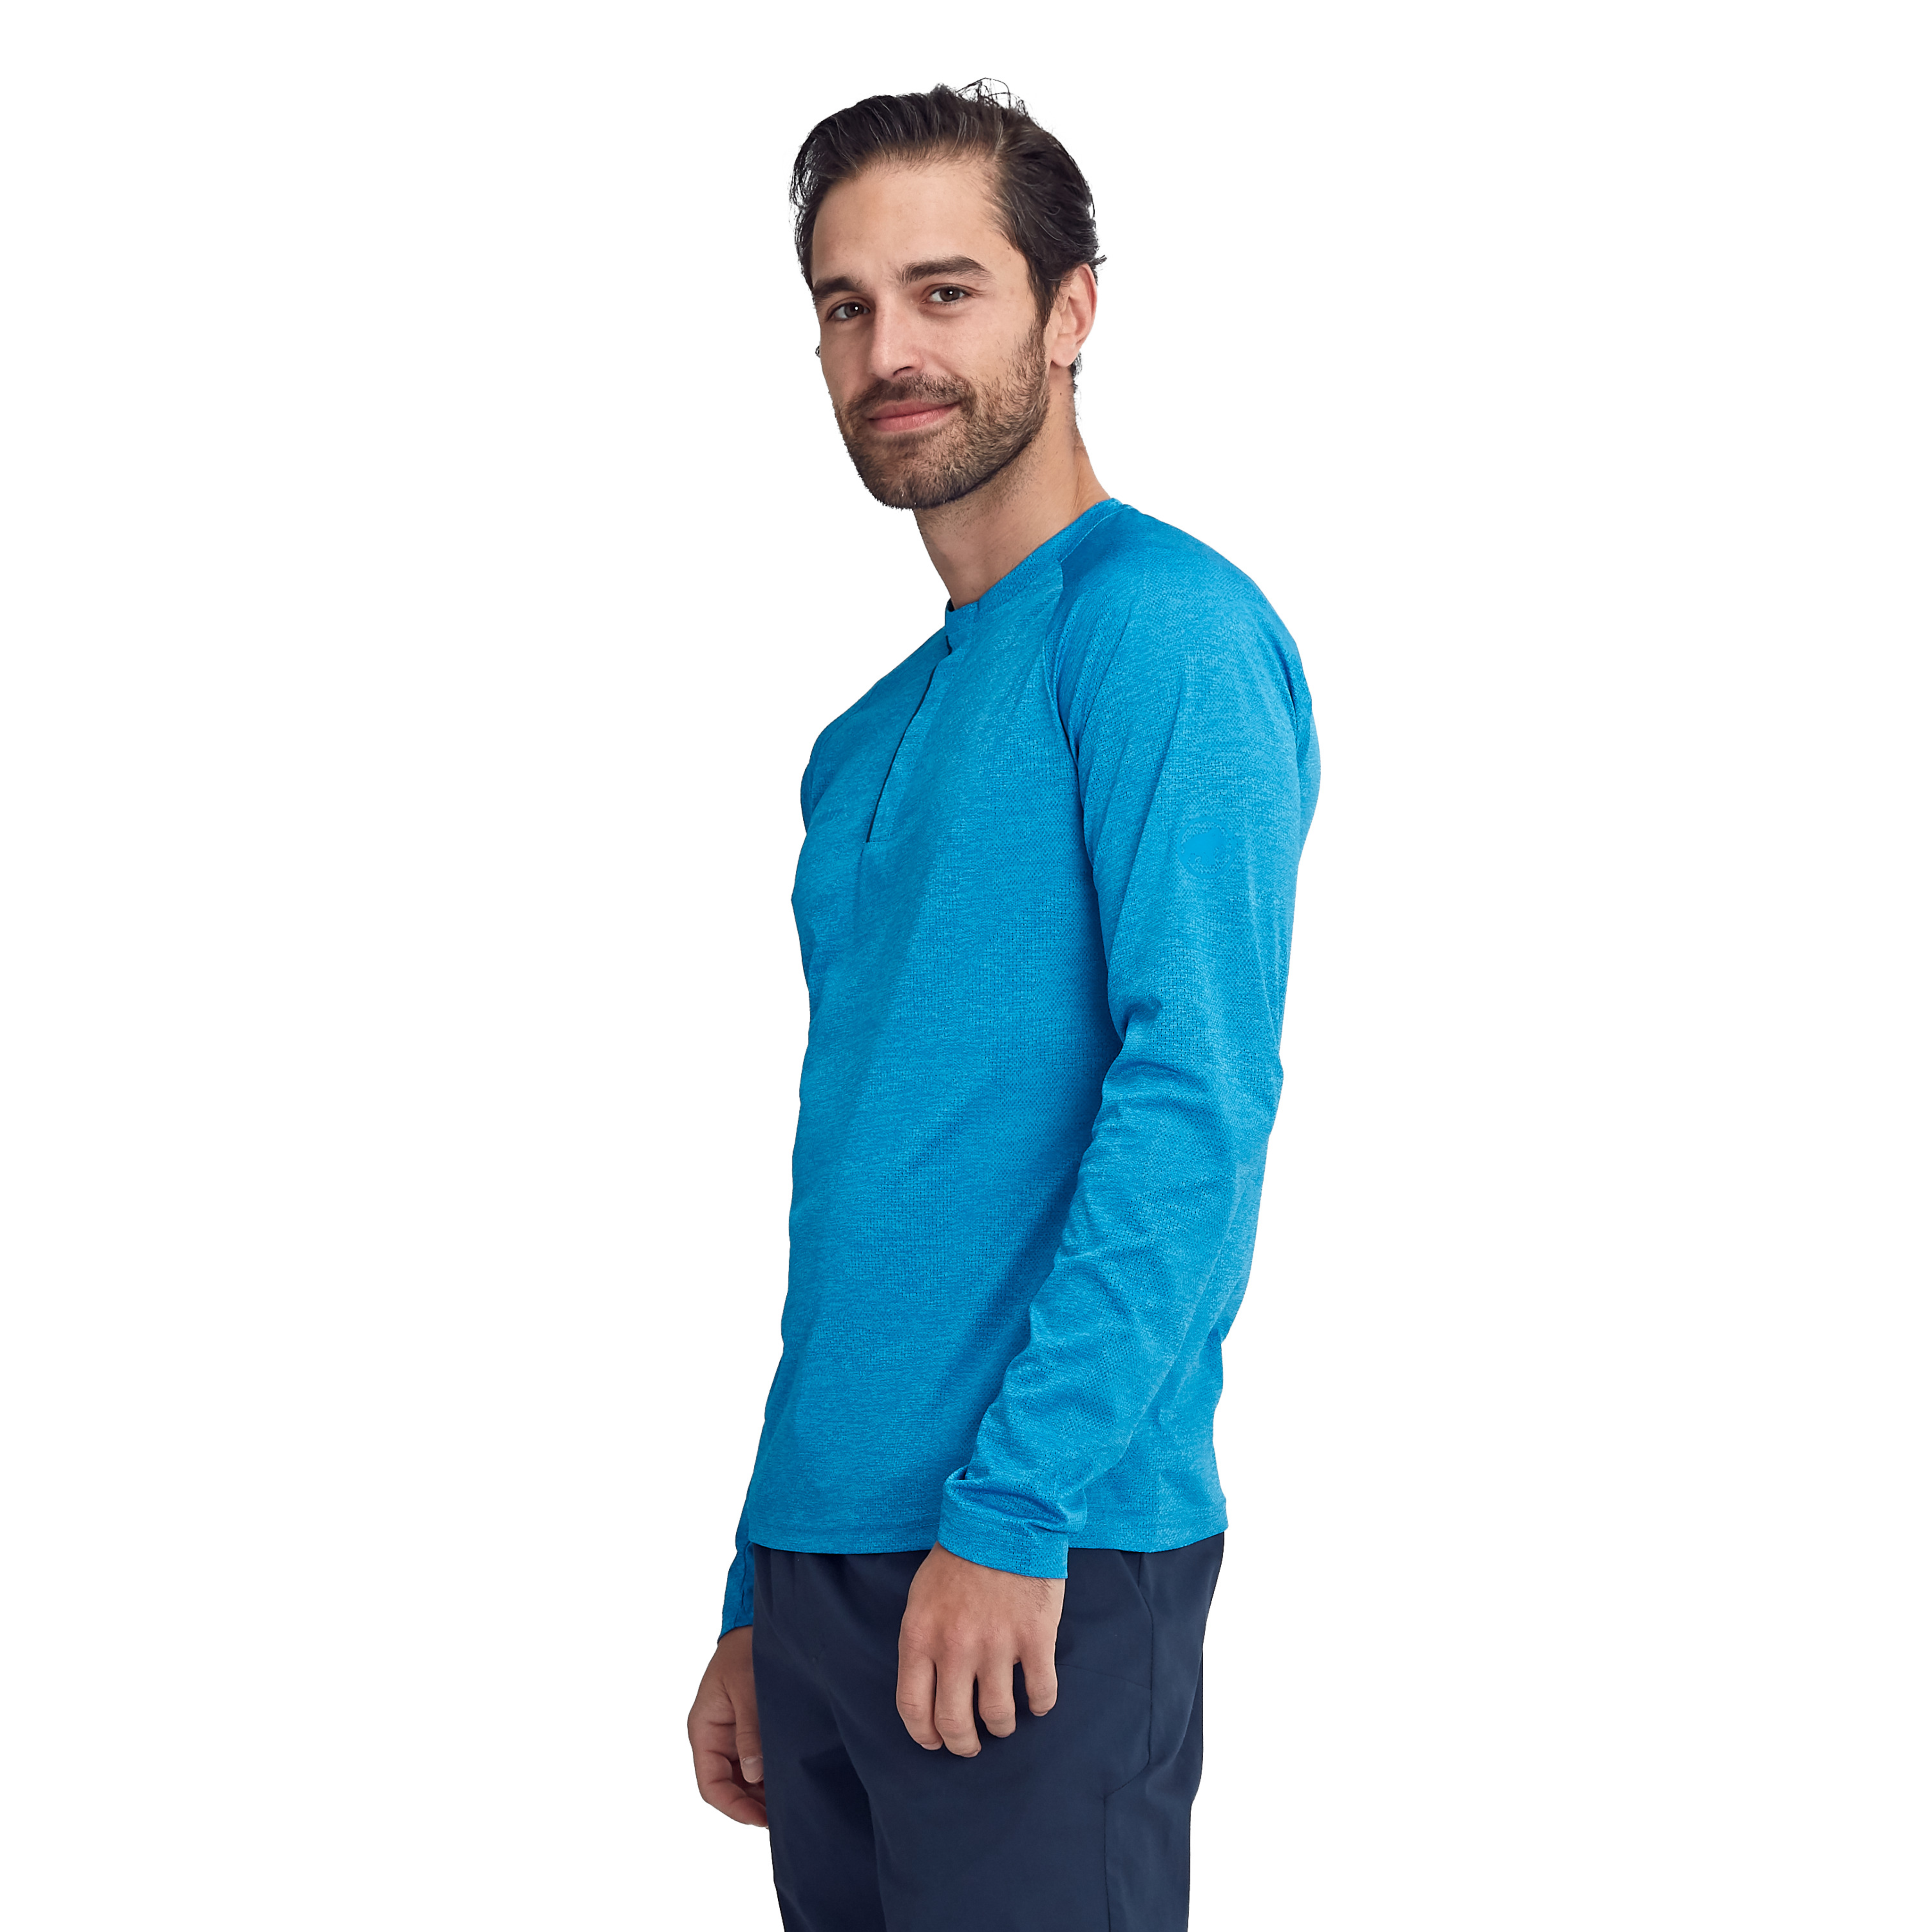 Crashiano Longsleeve Men product image